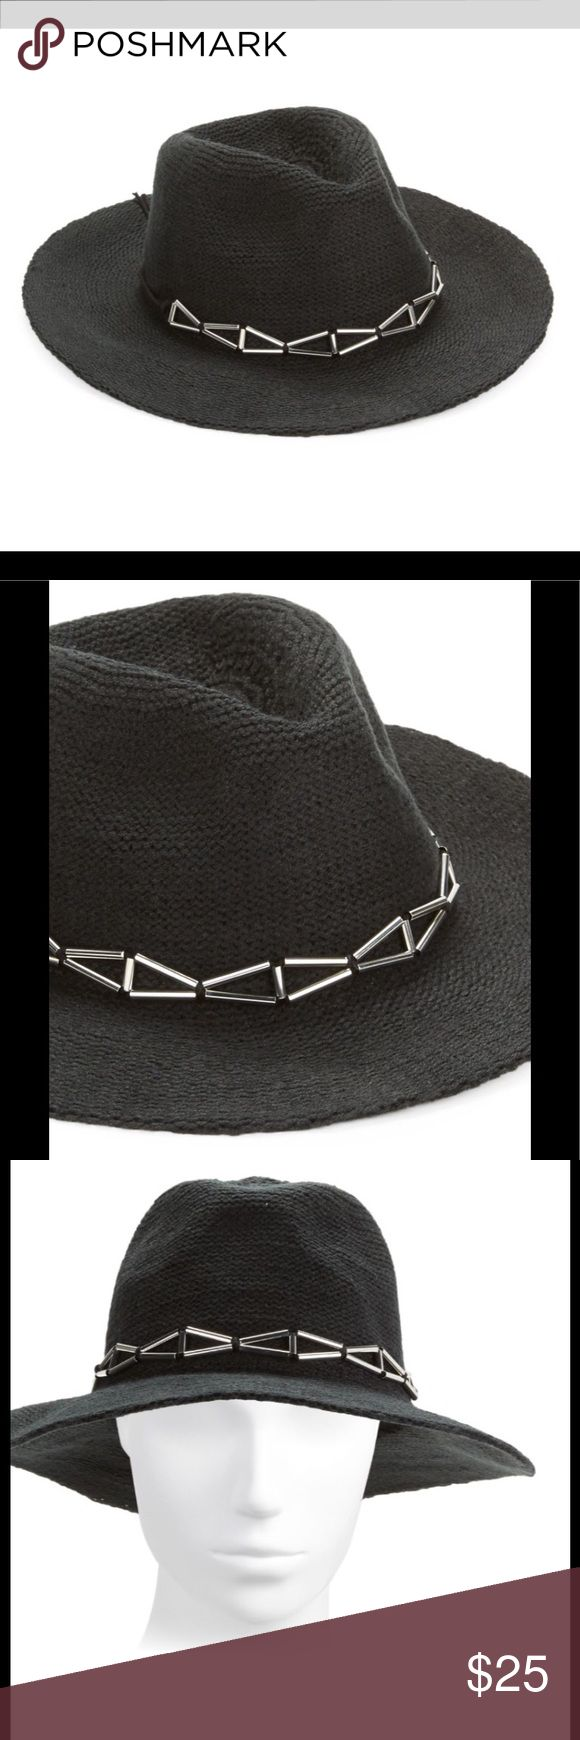 """Panama Hat Black w/ Metallic Band Stay on trend this fall with a fashionable hat. Great for dressing up or covering up a bad hair day! Soft and warm knit in a classic panama style. Metallic embellishments Brim, about 3"""", Polyester/acrylic,  Spot clean, Imported. 08292017759386 BCBGeneration Accessories Hats"""